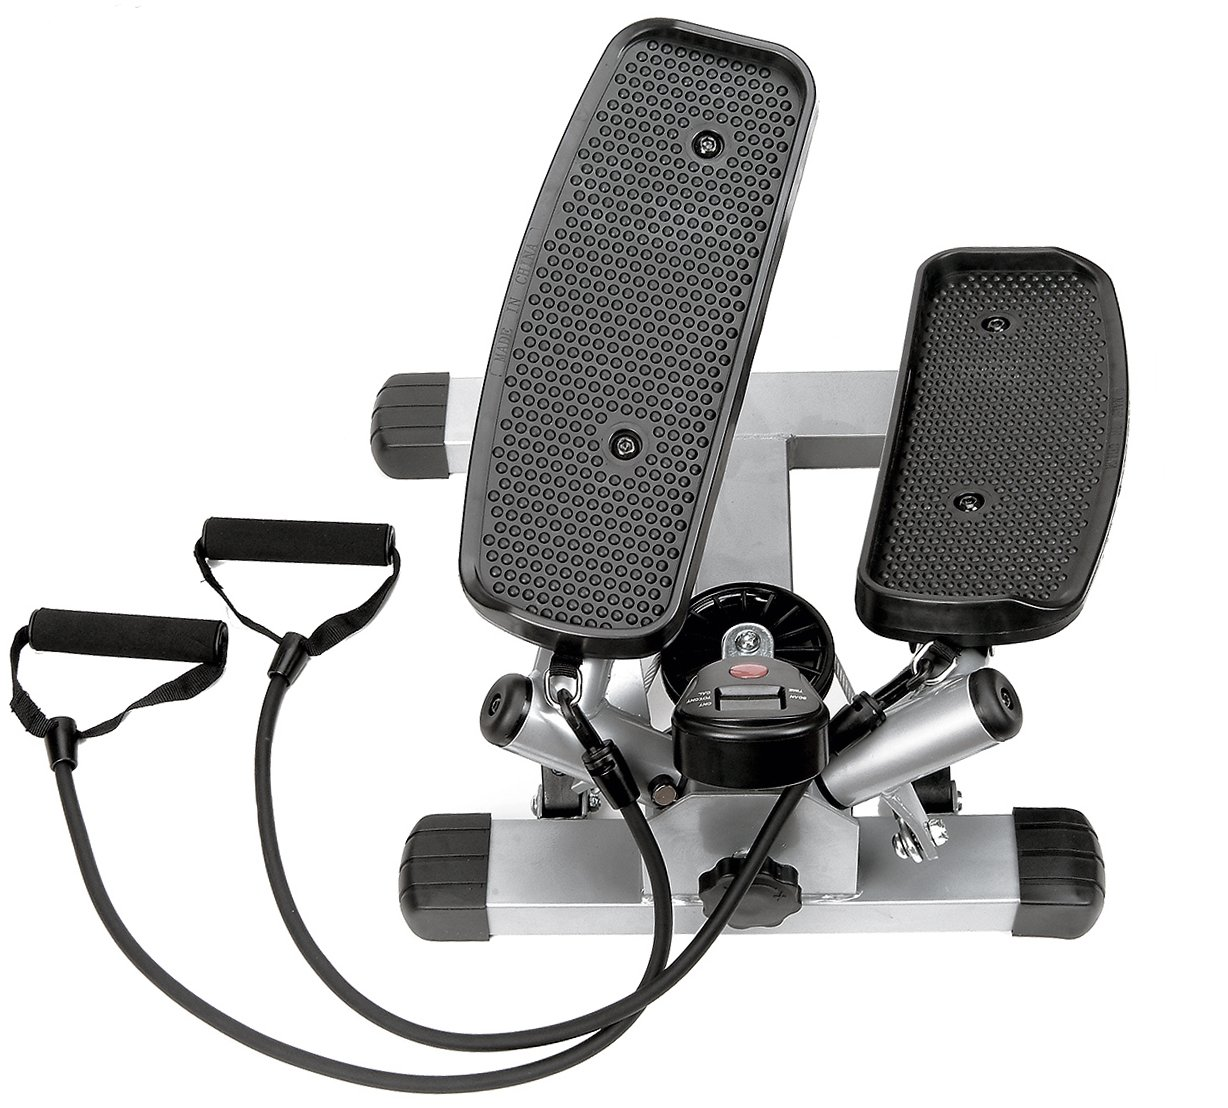 Sunny Fitness Twister Stepper